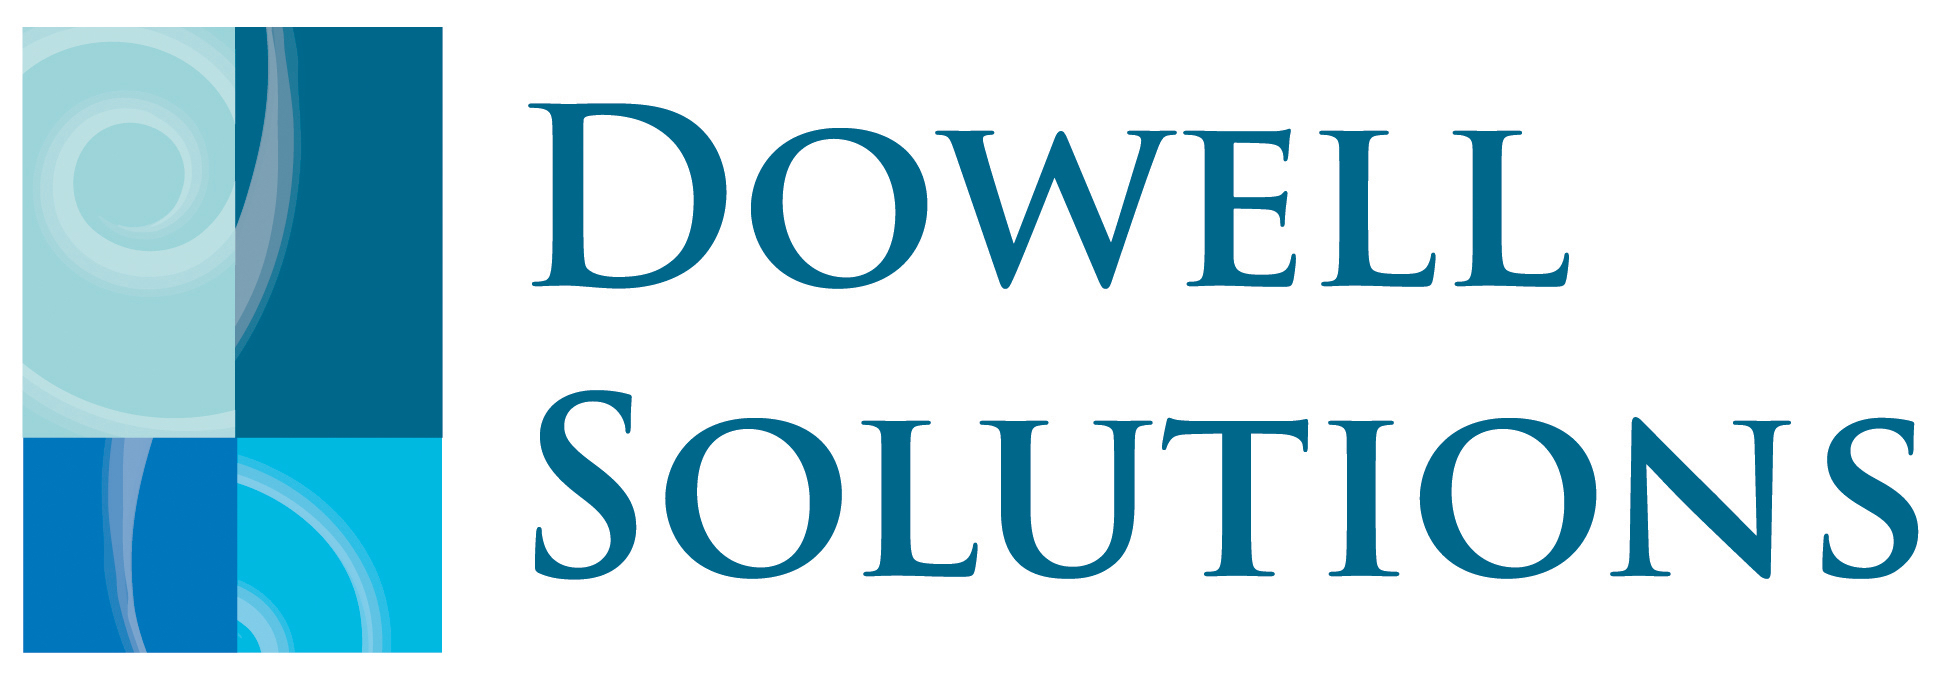 Dowell Solutions | WHS, Risk Management & Human Resources Consultant | Safety & Business Training